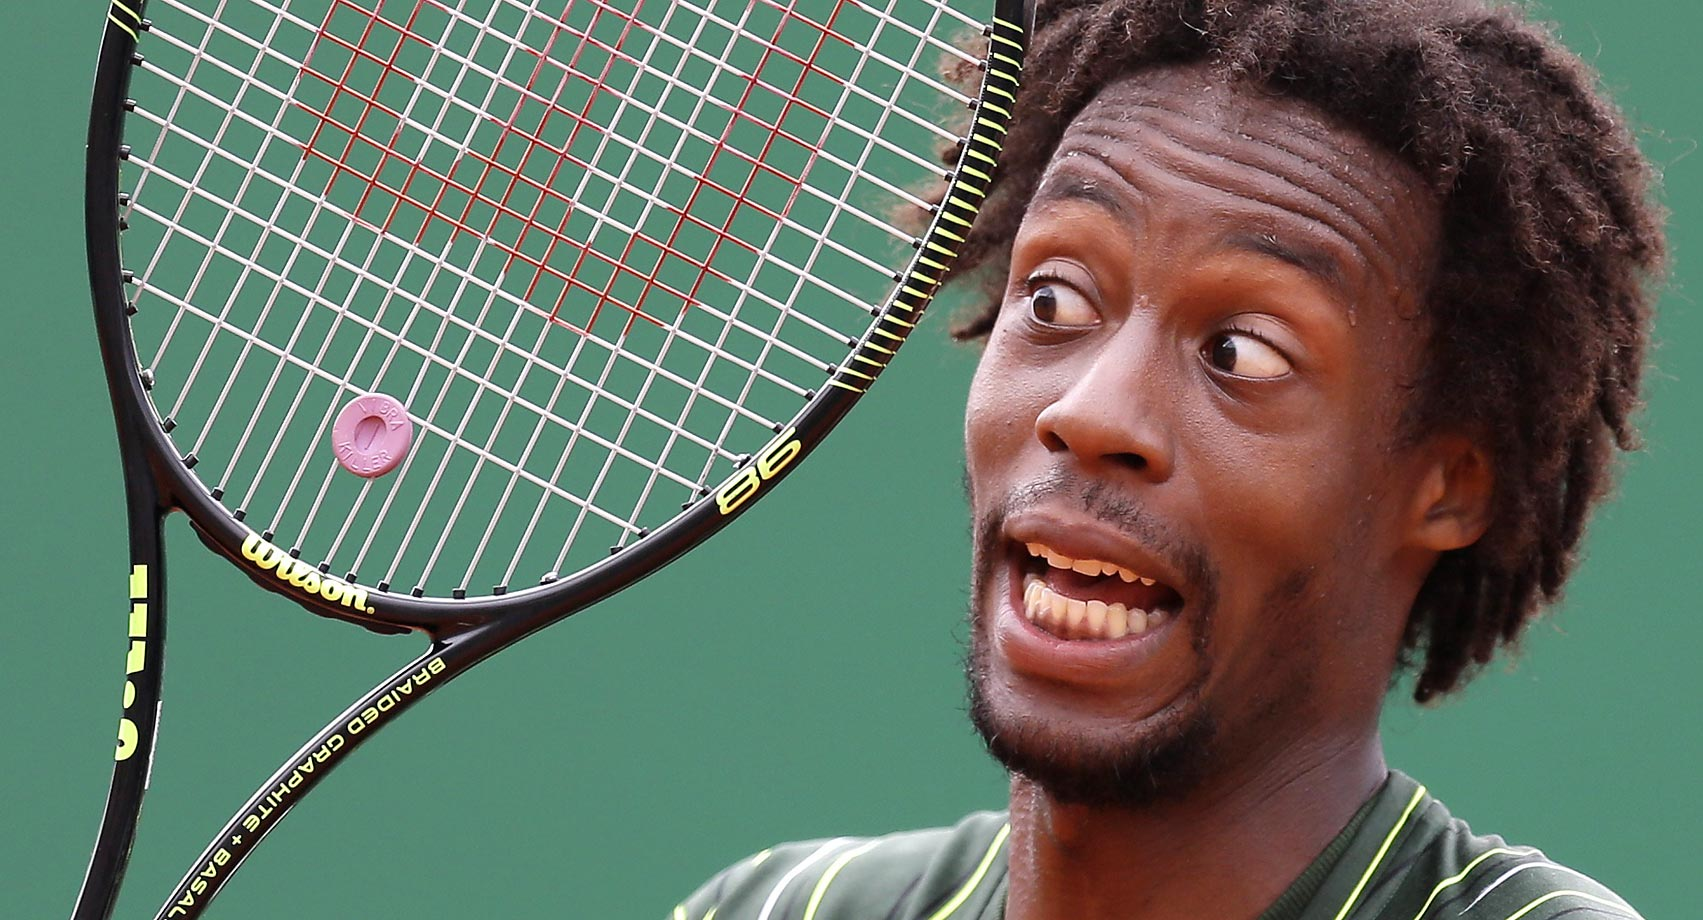 Gael Monfils during his match against Roger Federer at the Monte Carlo Tennis Masters tournament.